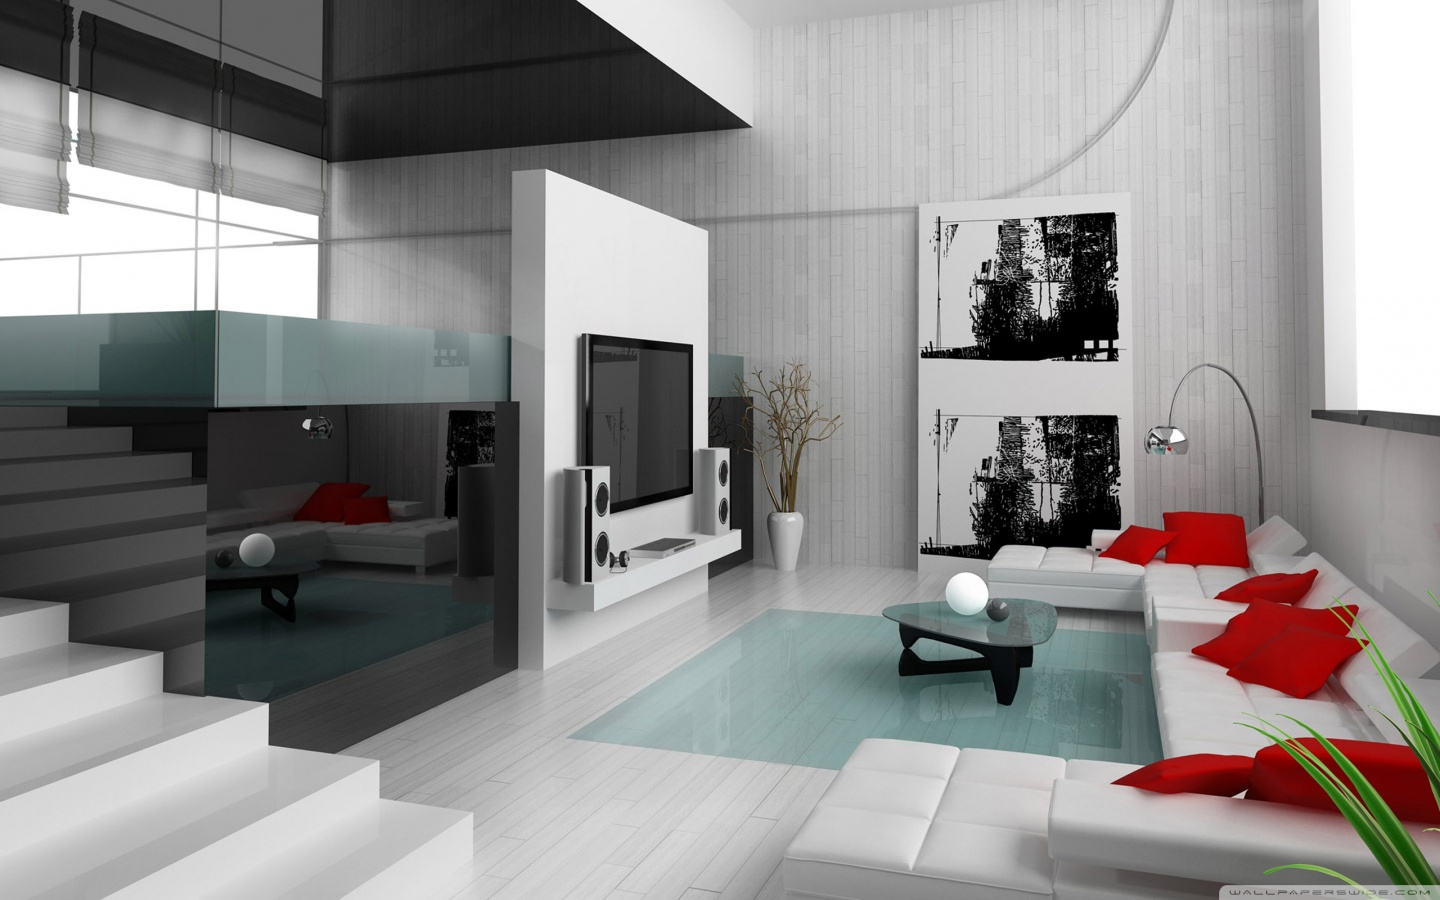 Minimalist interior design imagination art architecture for Modern interior ideas